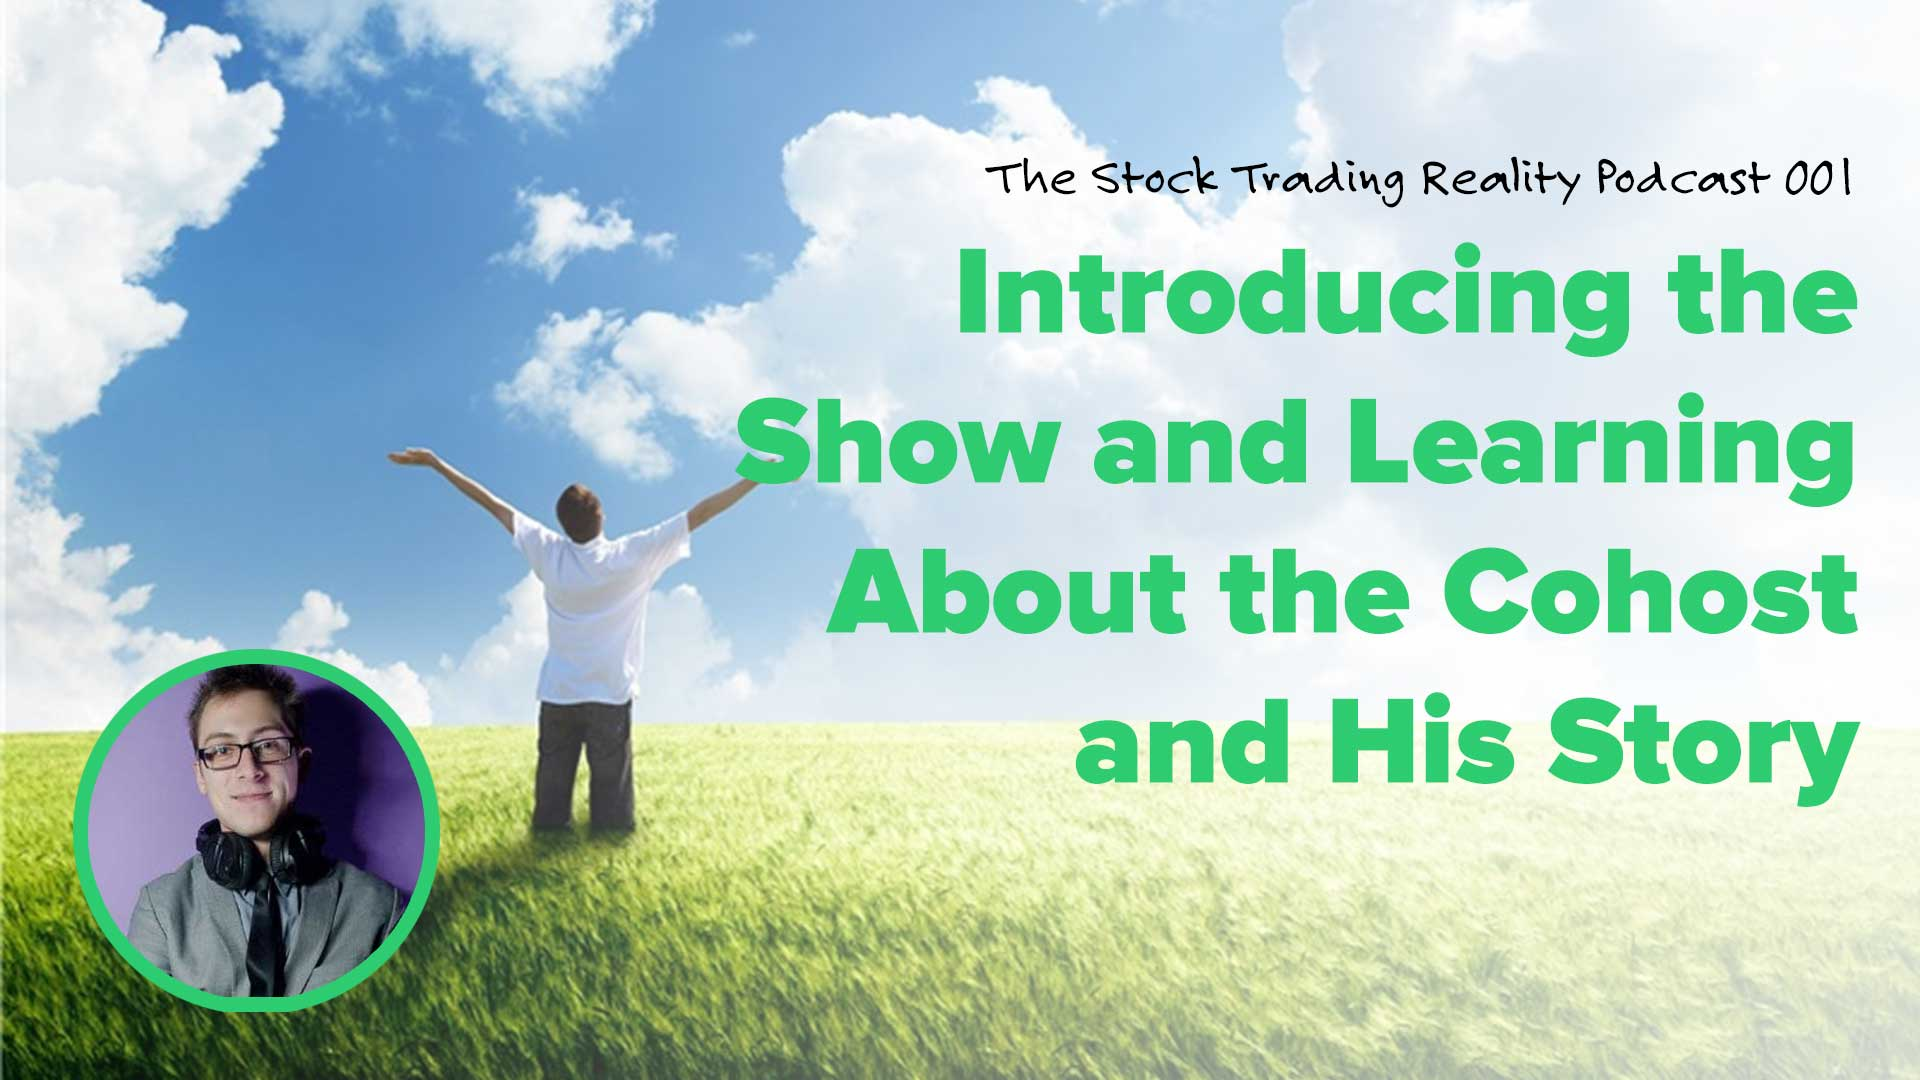 The Stock Trading Reality Podcast 001: Introducing the Show and Learning About the Cohost and His Story